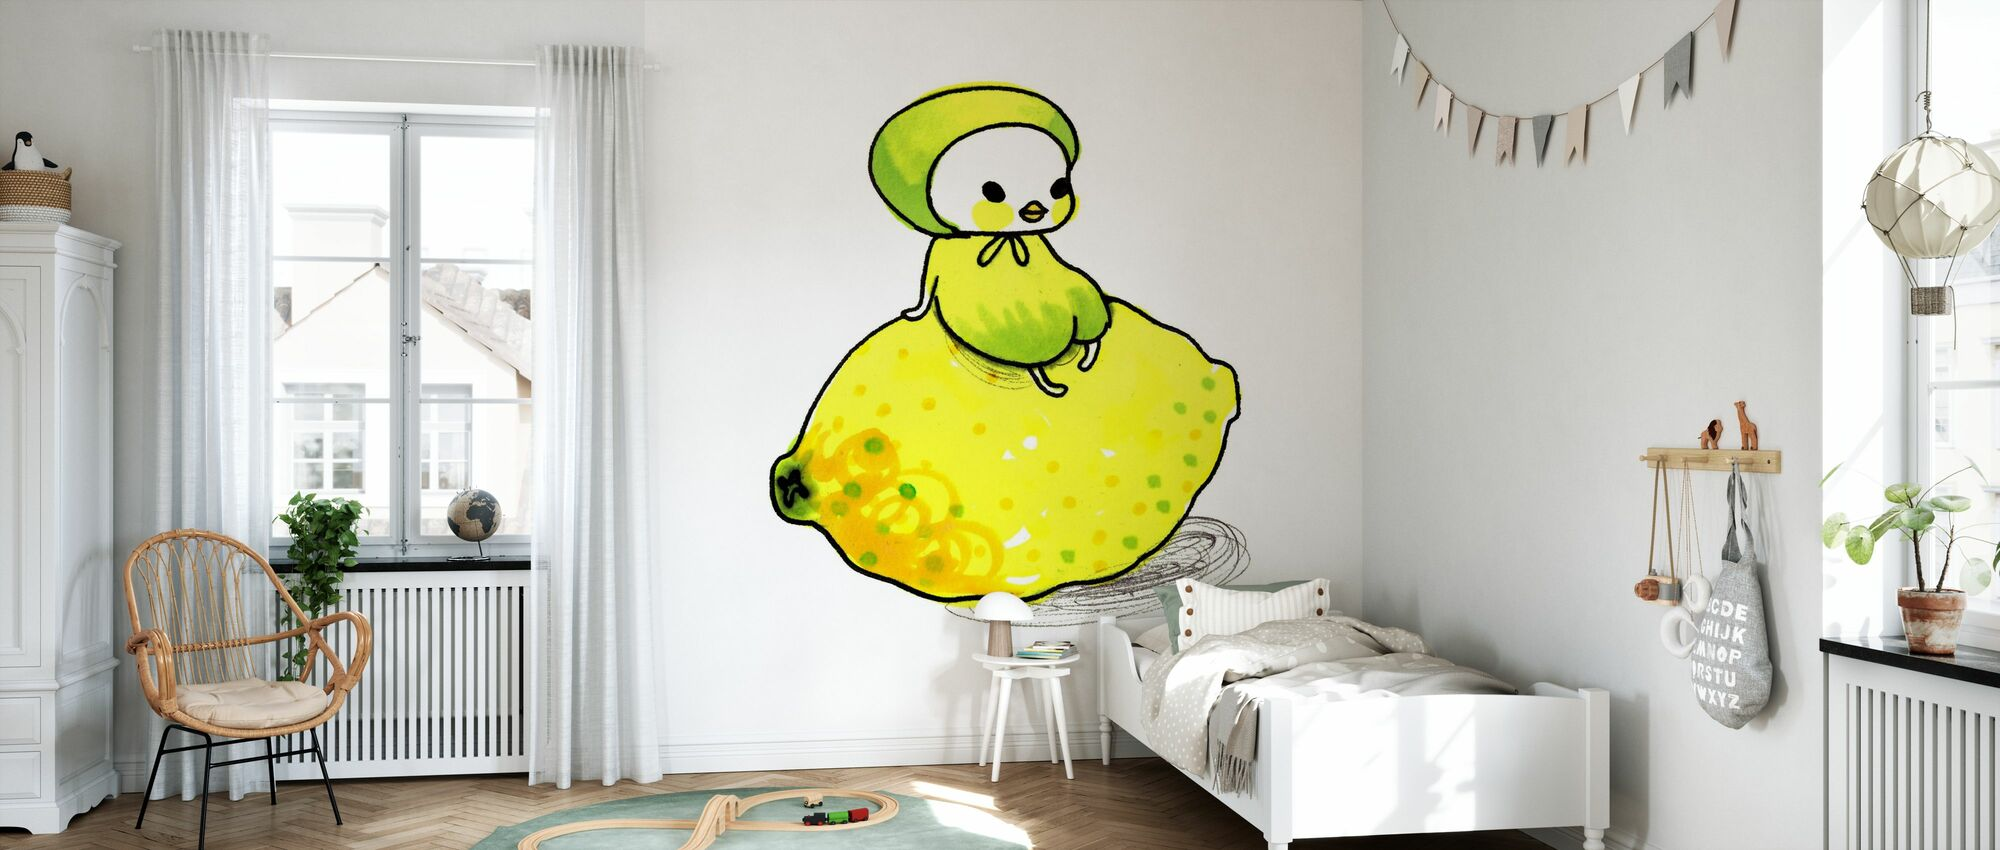 Lemon - Wallpaper - Kids Room